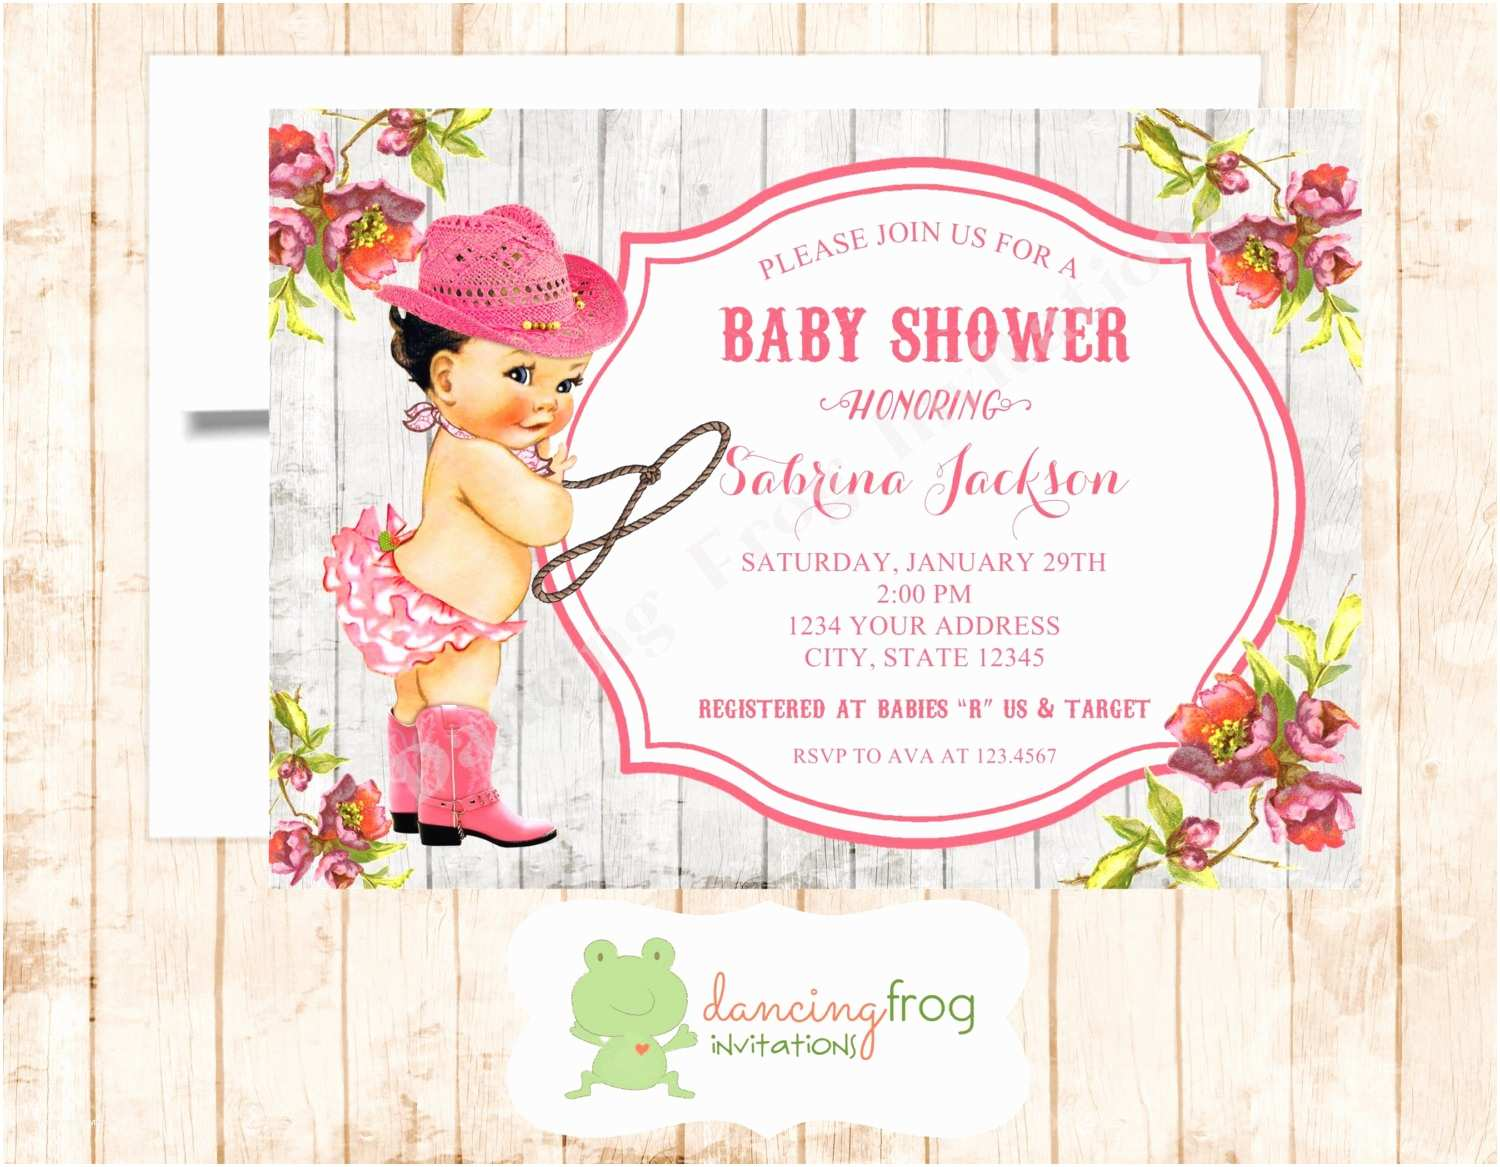 Cowgirl Baby Shower Invitations Baby Shower Ideas with Pink Corner Flower Pattern Vintage